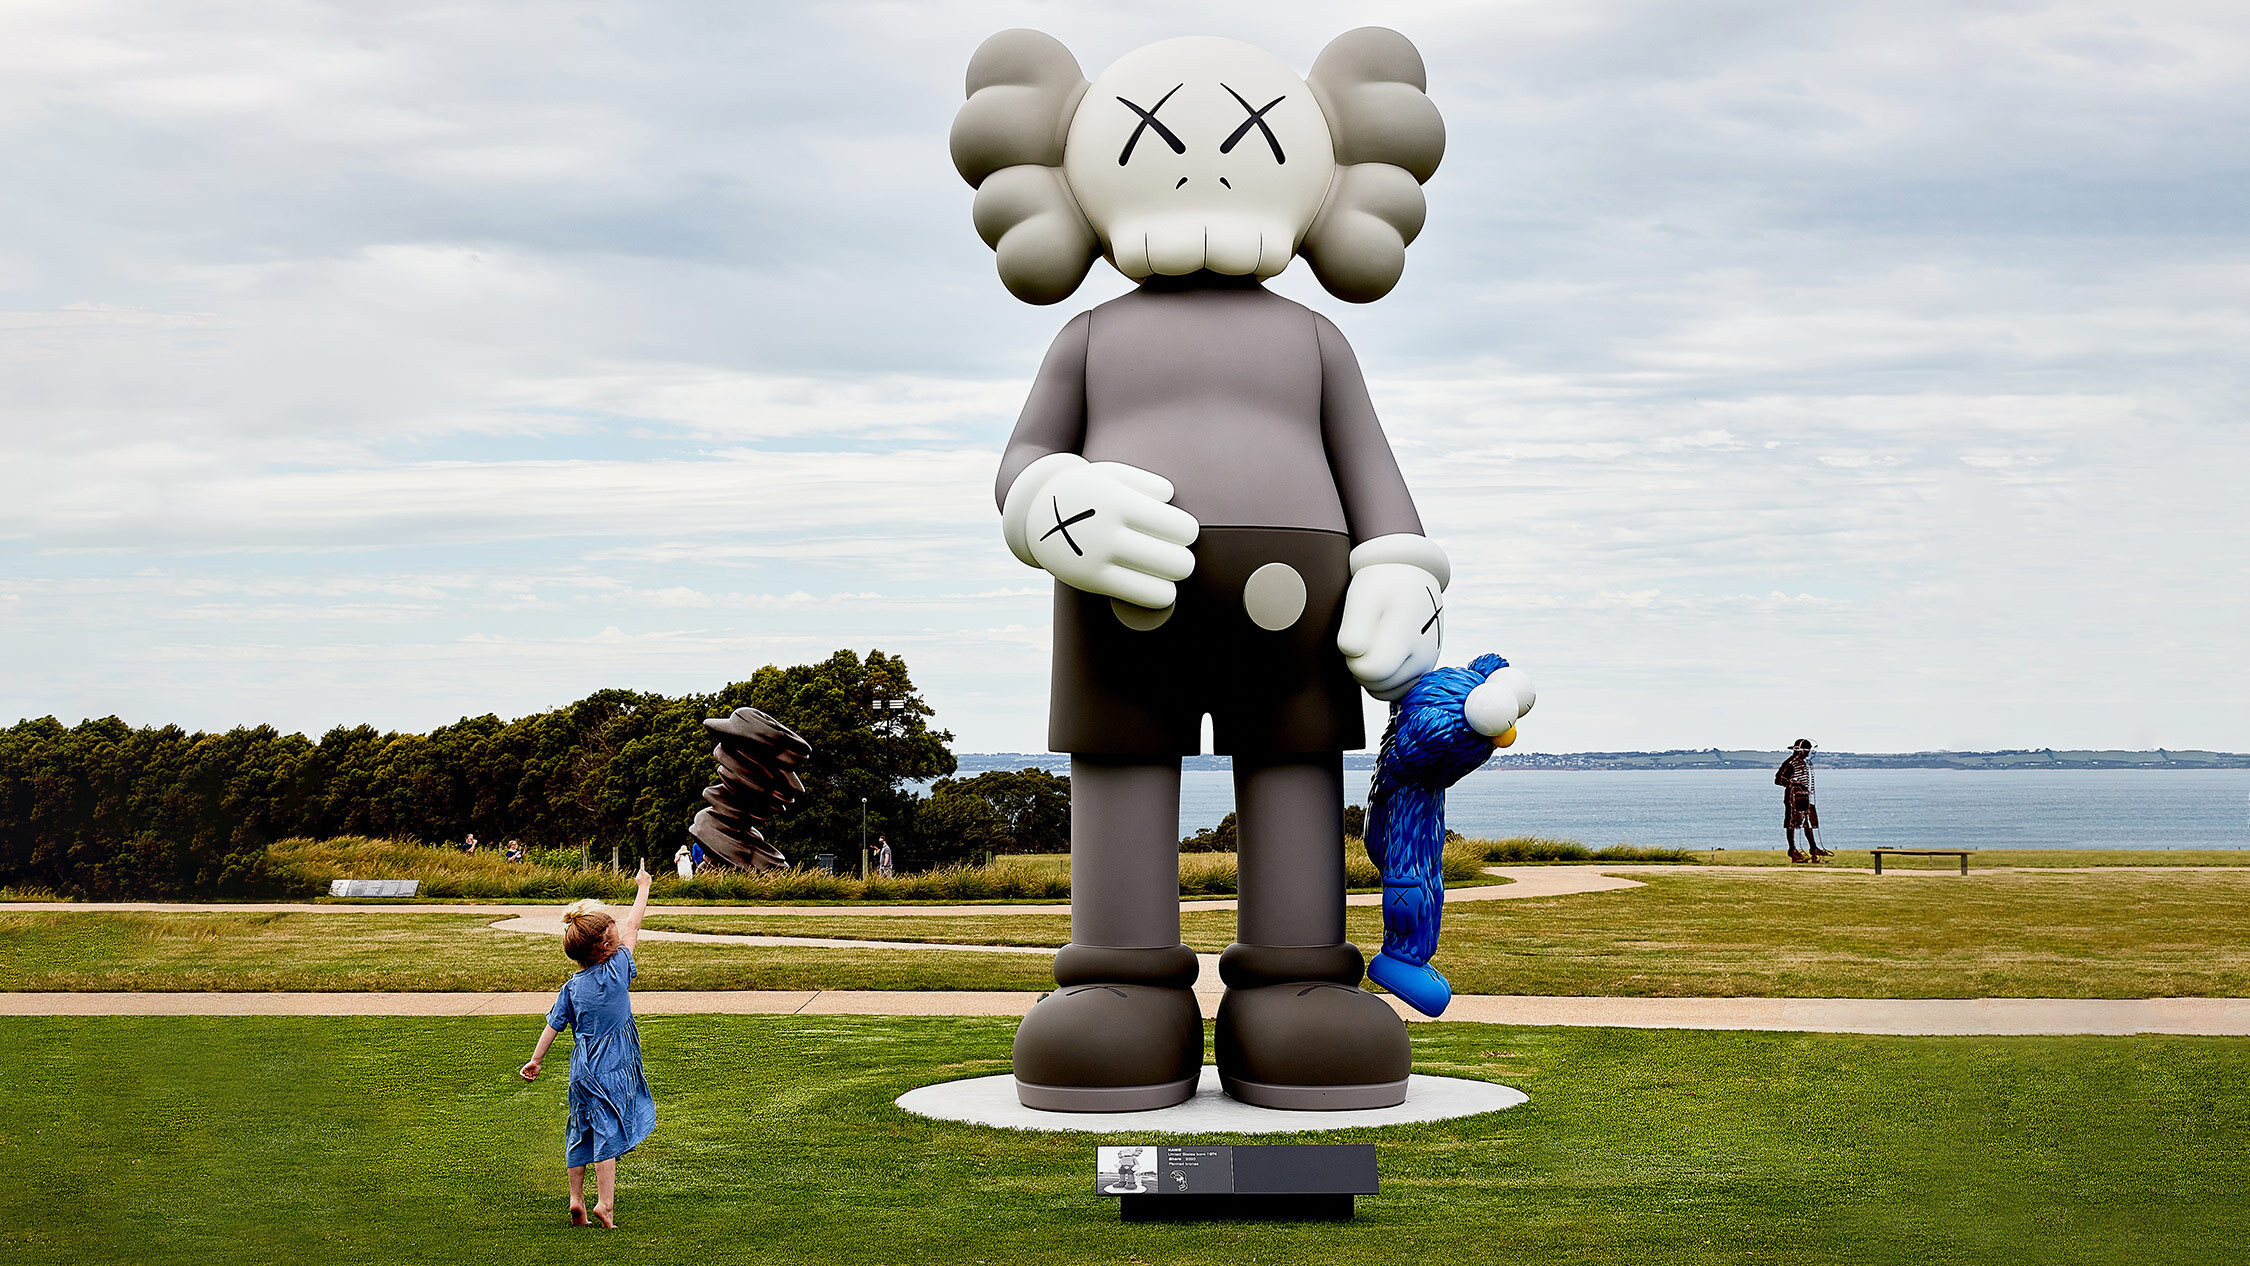 A huge grey sculpture of a pop art skull character on a peninsula. A small child reaches up to it